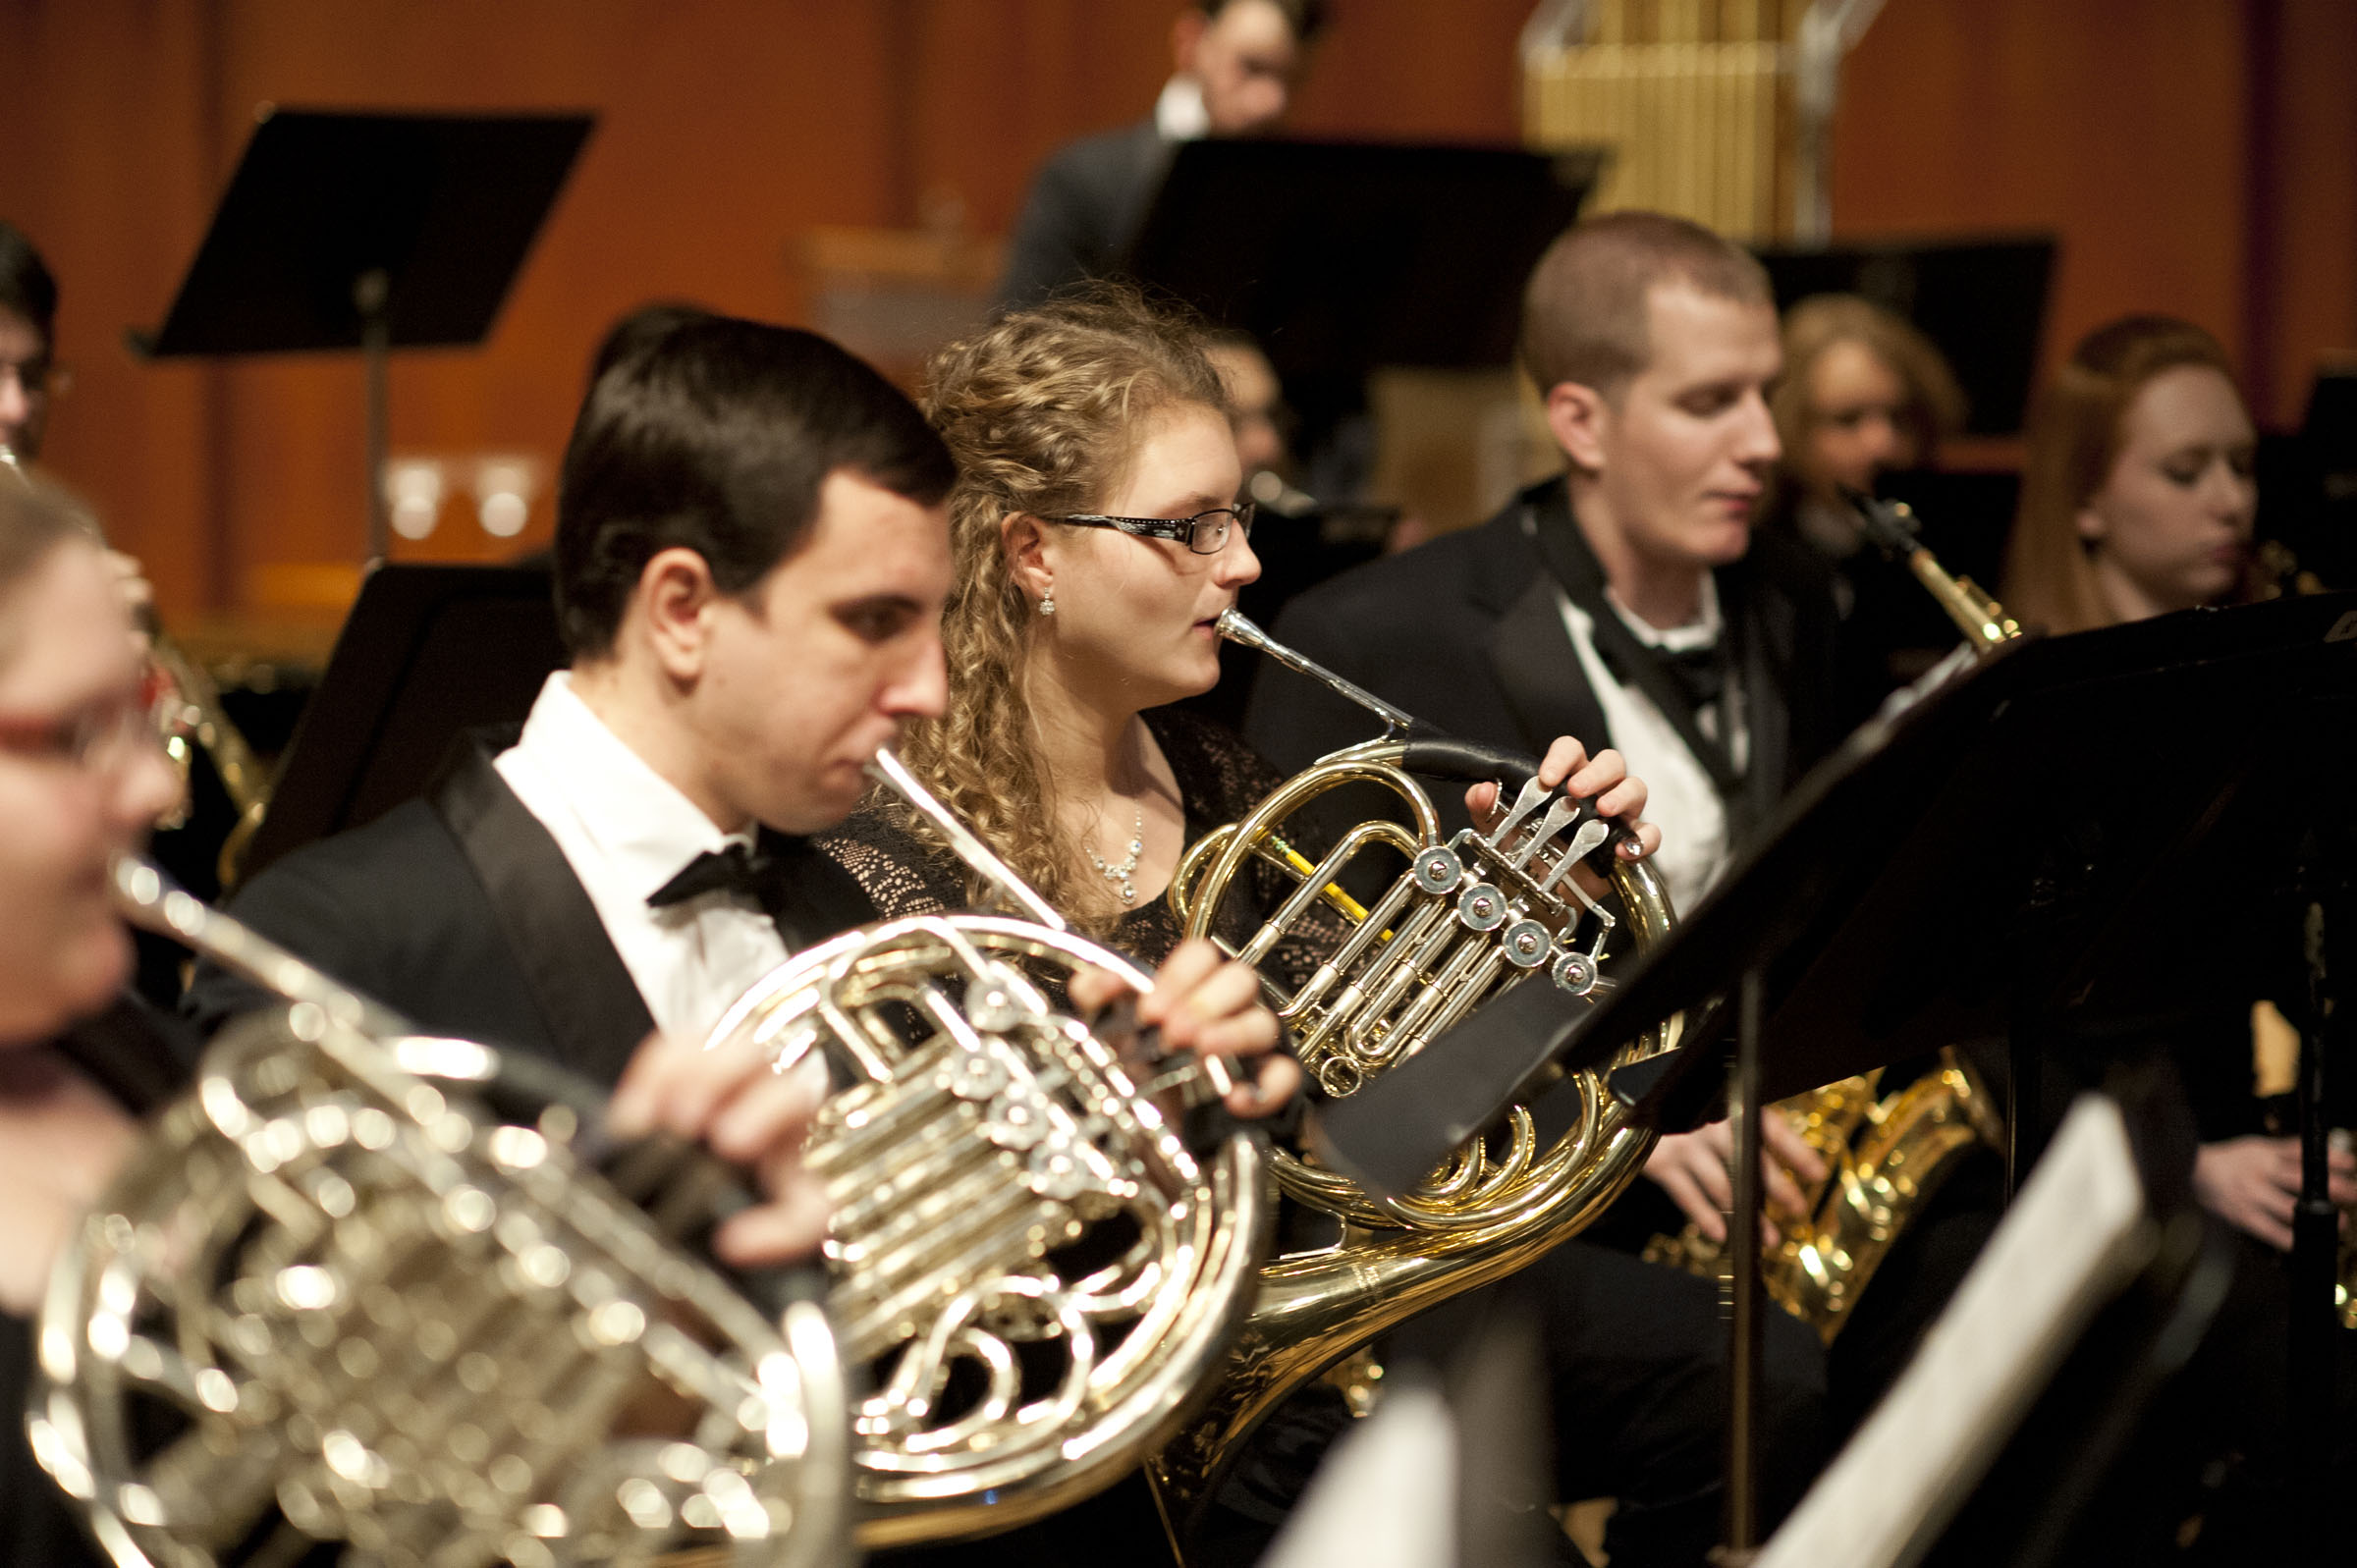 Italian musicians to perform with Carroll University's Wind Symphony